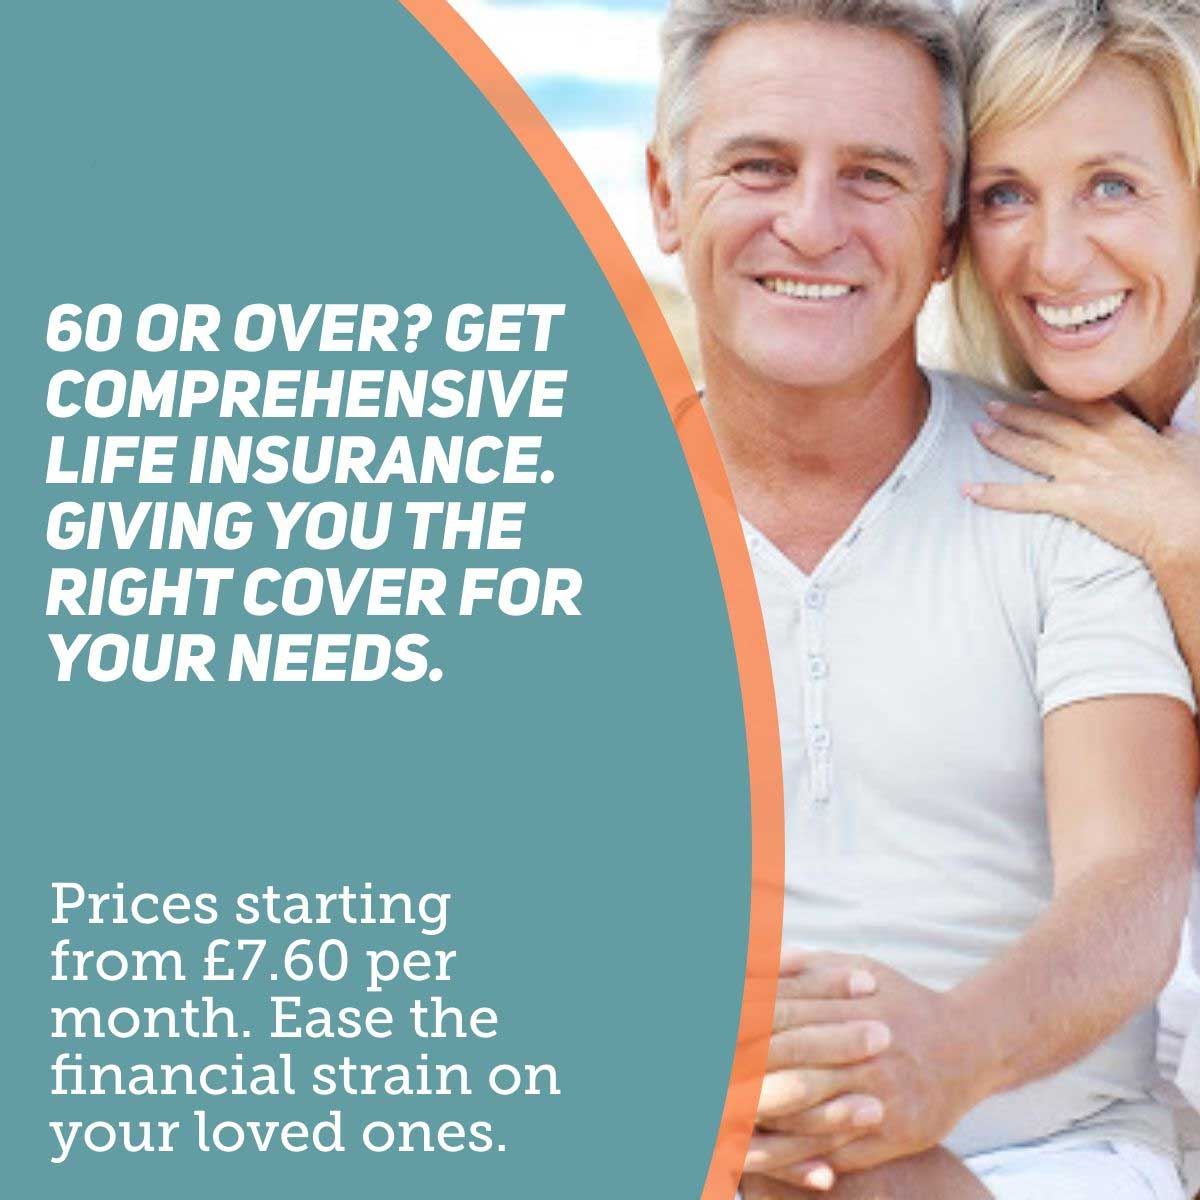 life insurance over 60 image